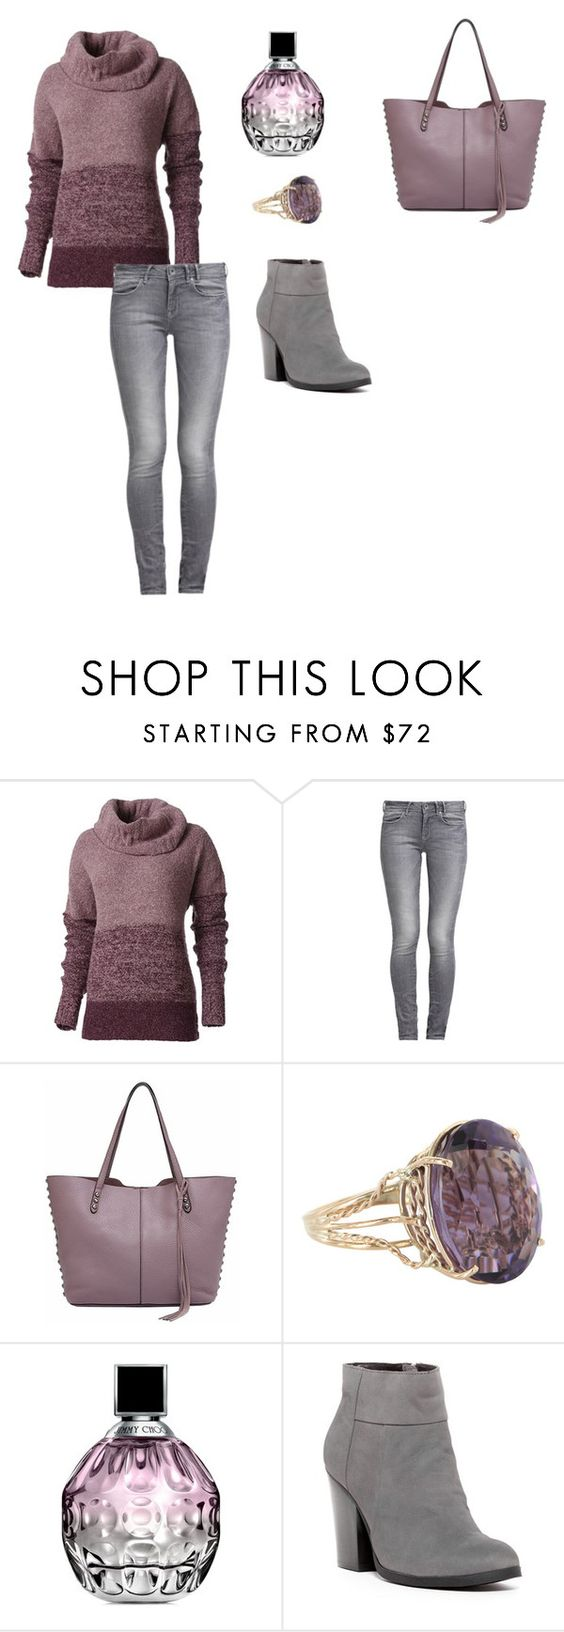 """Foreigner: Say You Will..."" by lalynany ❤ liked on Polyvore featuring Royal Robbins, GUESS, Rebecca Minkoff, Vintage, Jimmy Choo and Kenneth Cole Reaction"